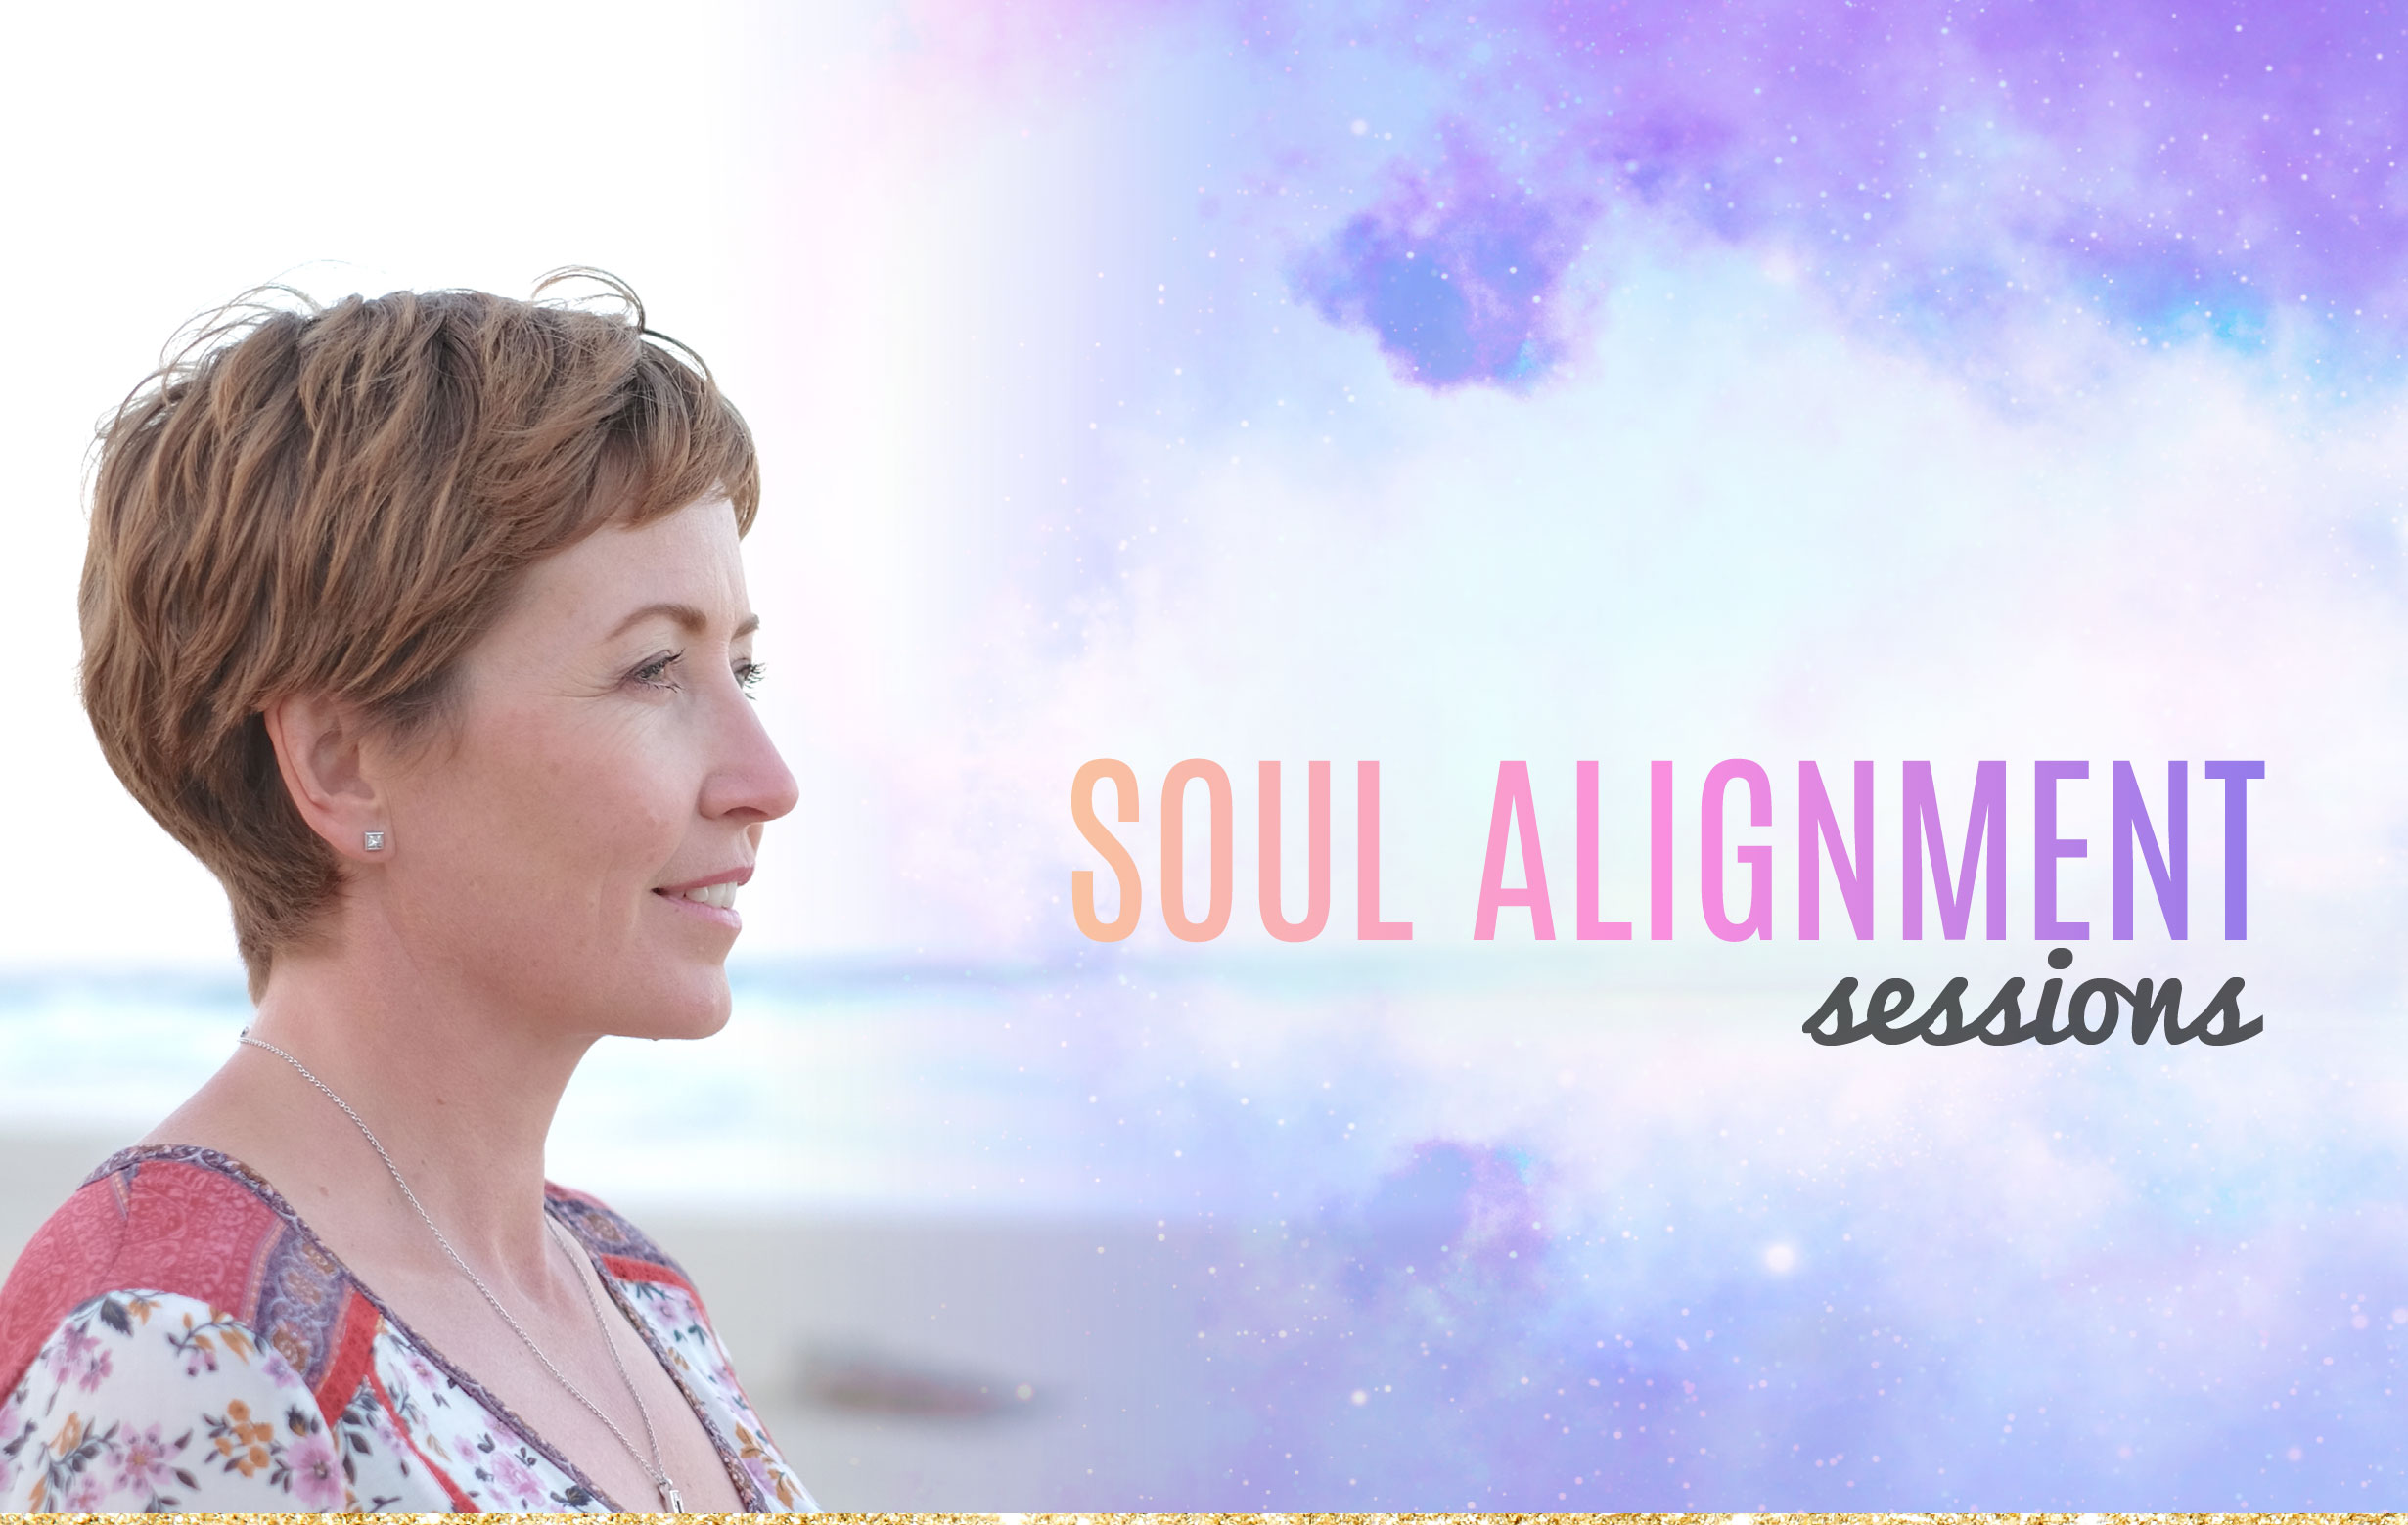 soul-alignment-sessions-banner-mobile